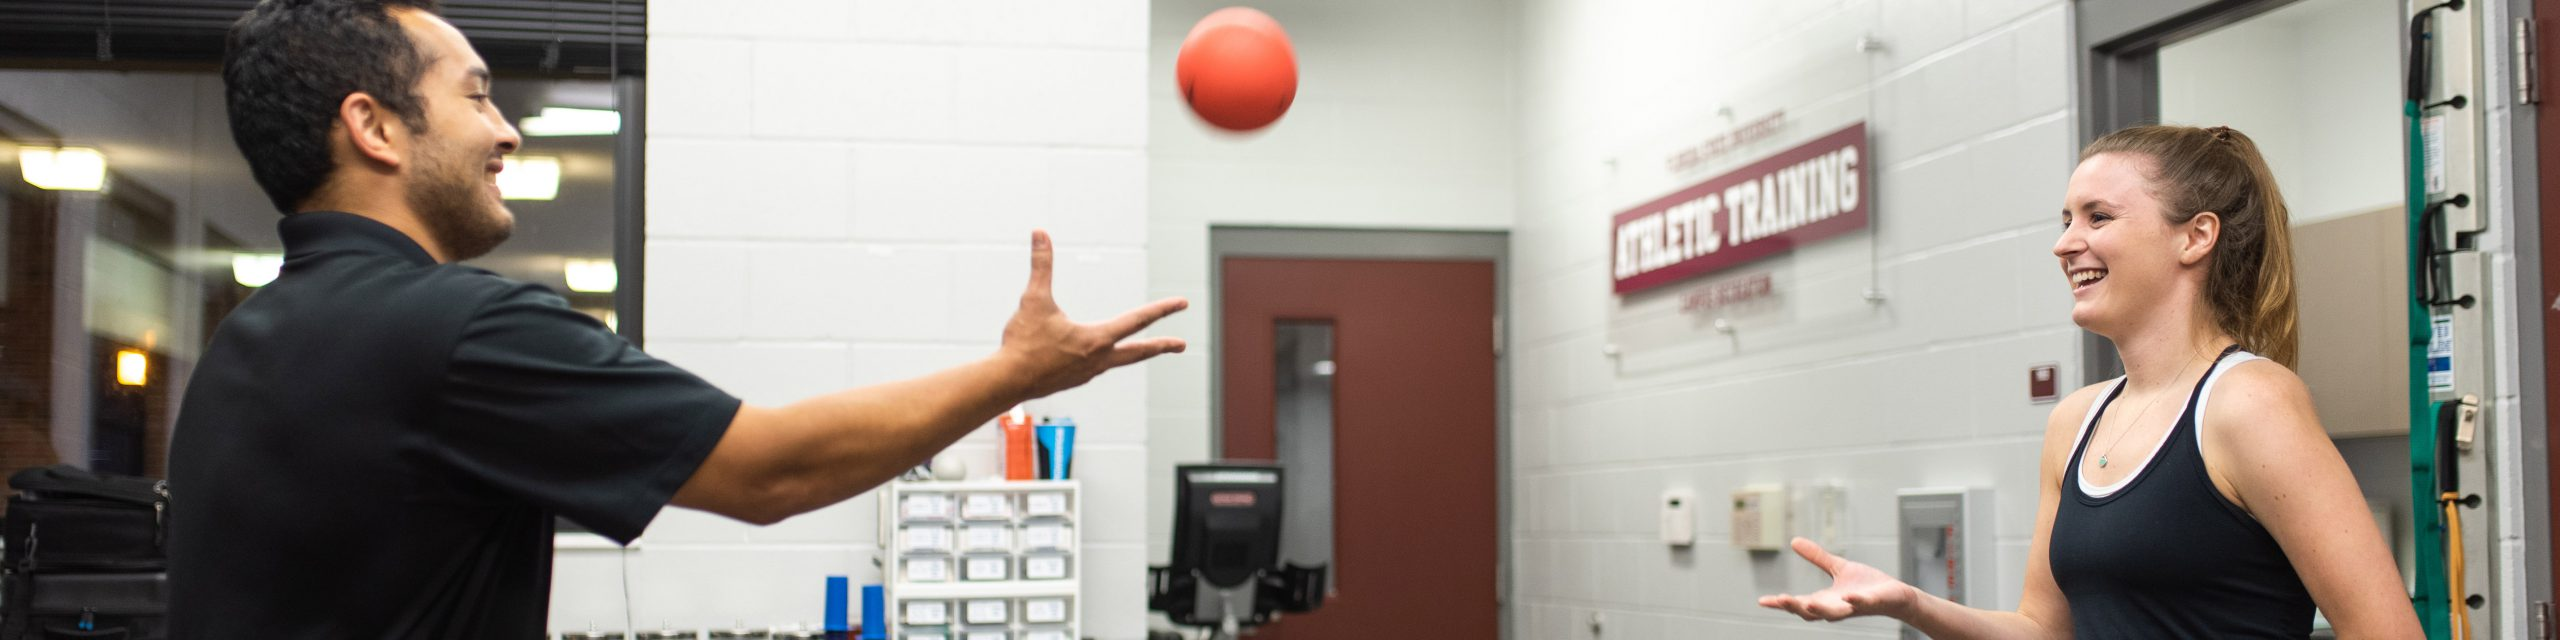 Athletic Trainer throwing a ball to a patient